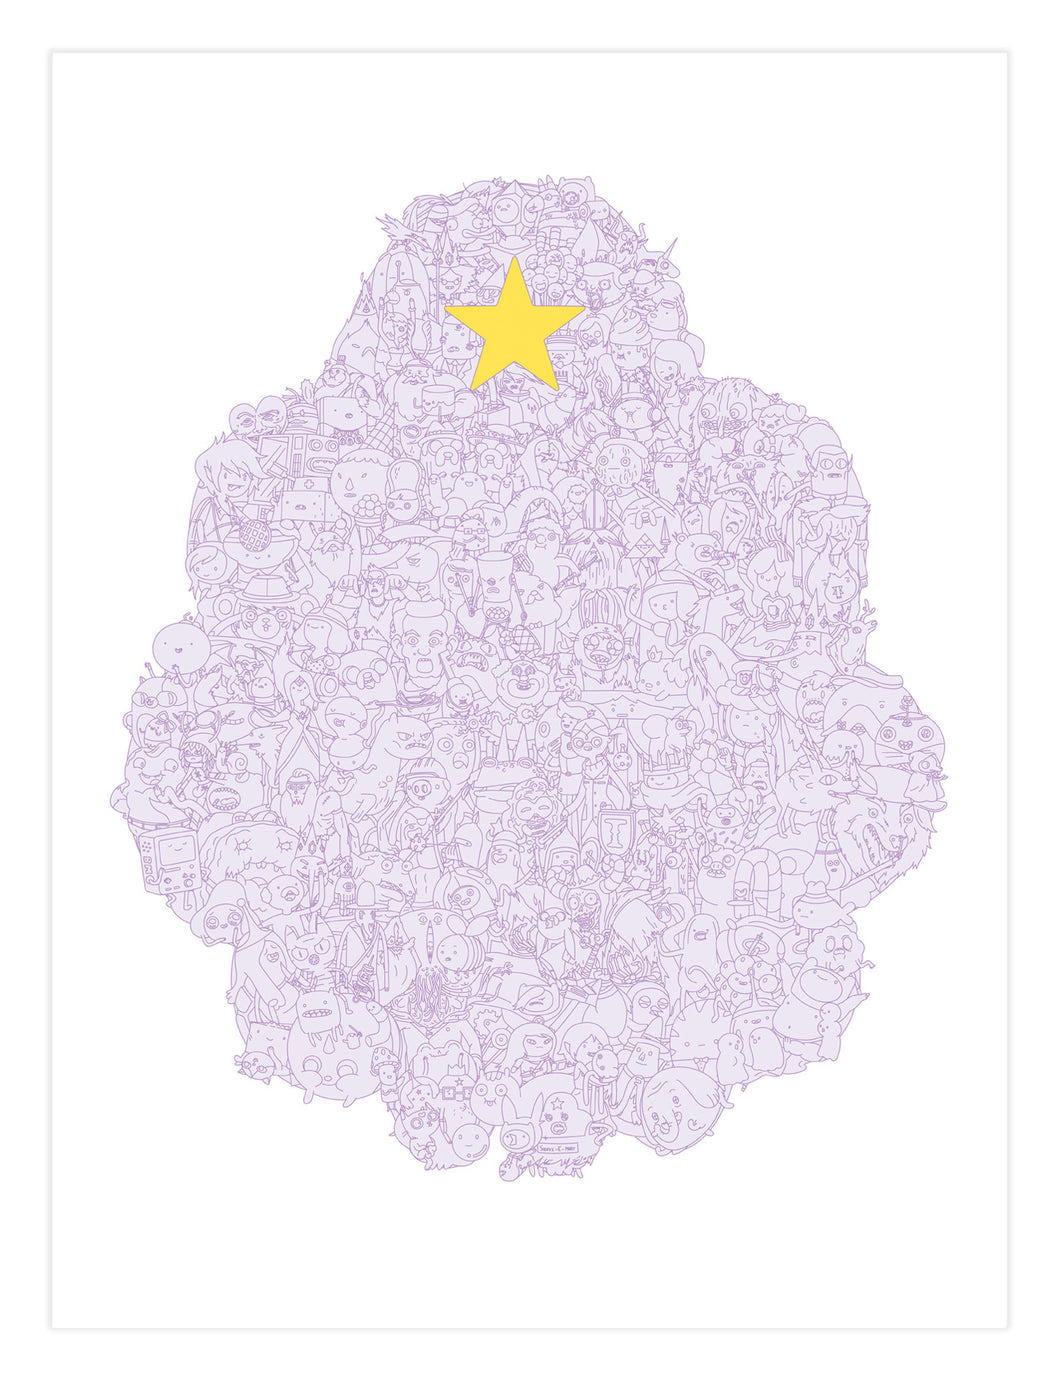 Lumpy Space Poster (Adventure Time) - Print